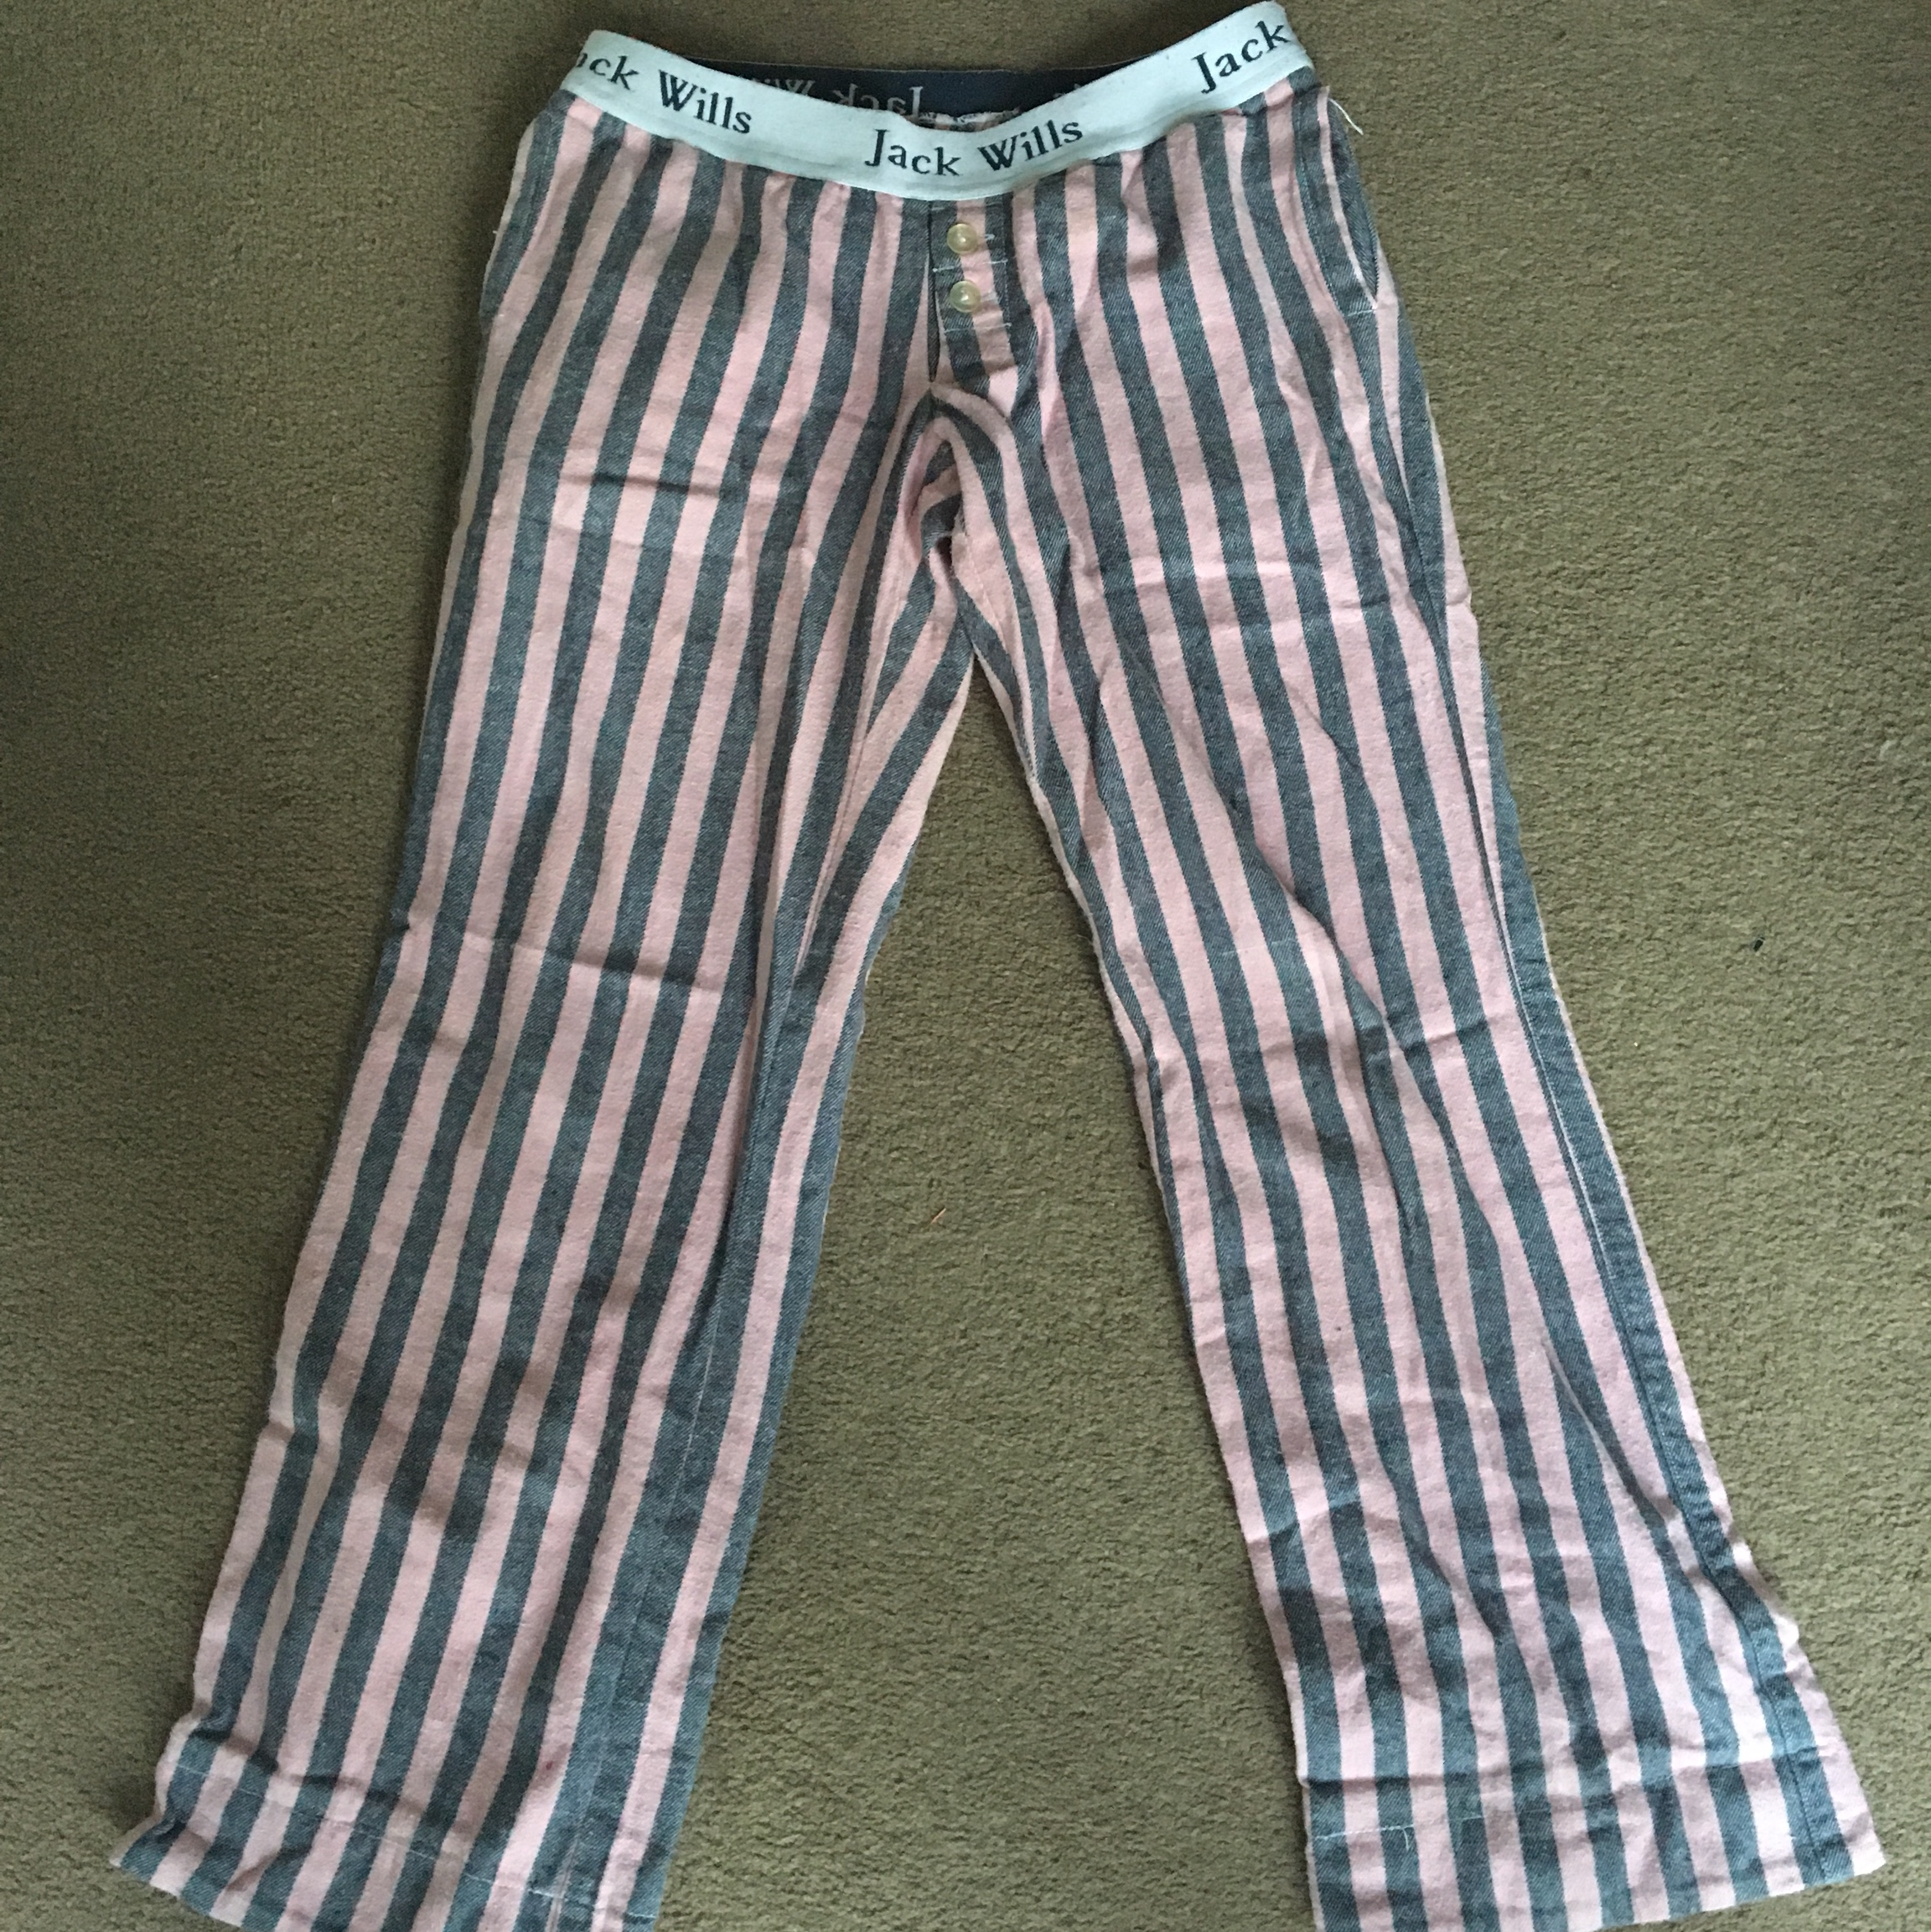 many choices of new season customers first Jack Wills pyjama bottoms with travel bag Size 8 - Depop